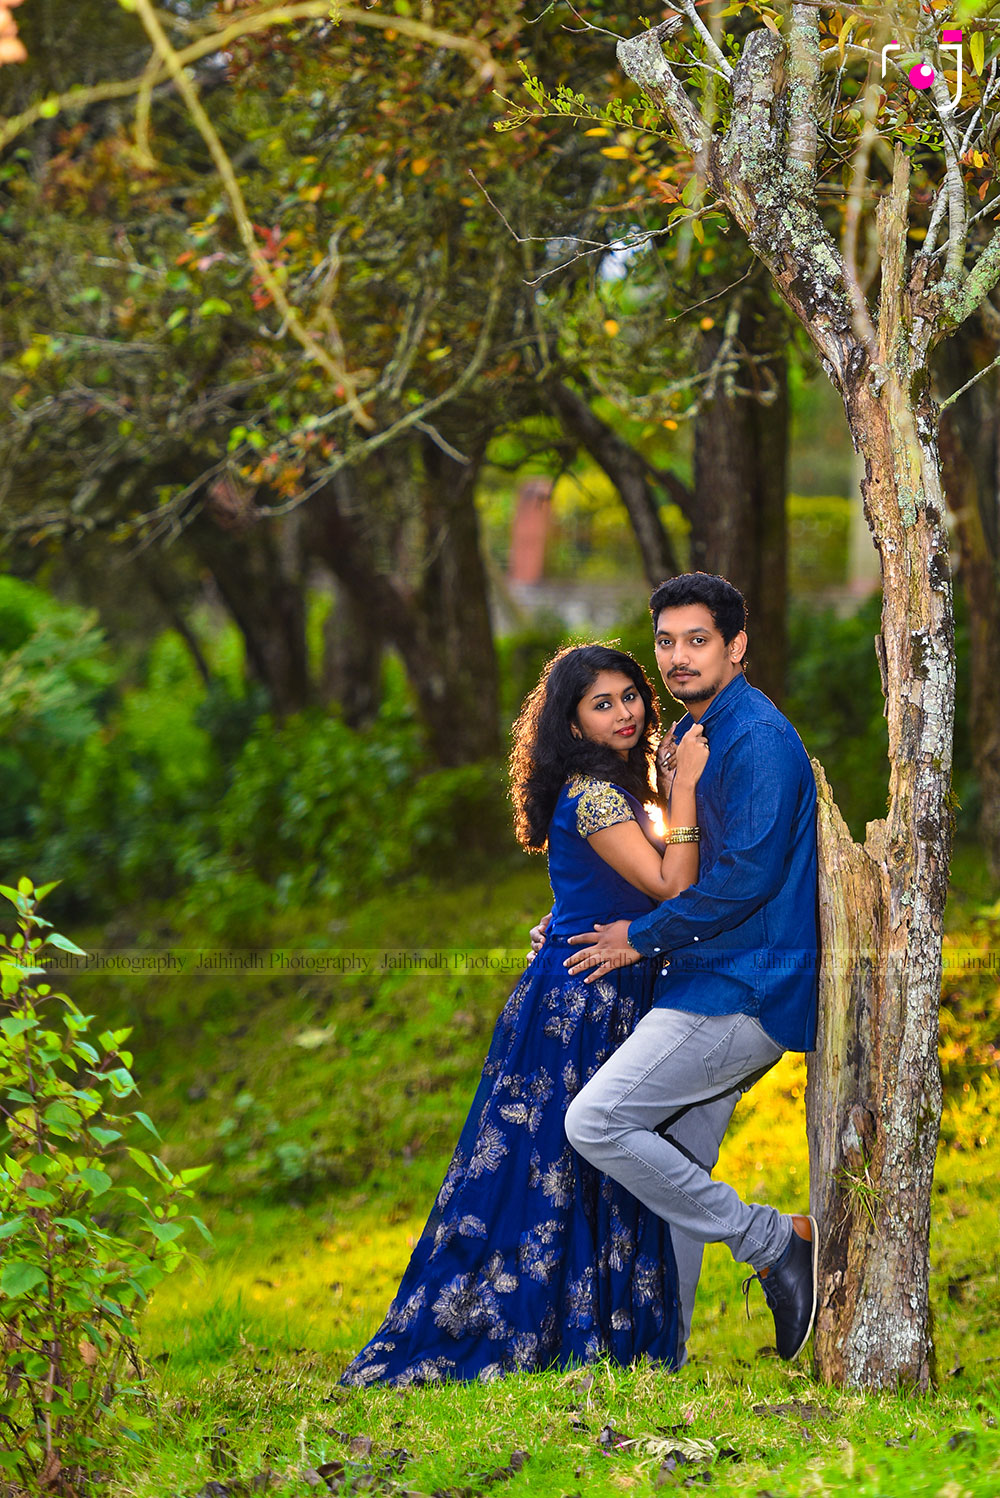 Outdoor Photography Wedding: Post Wedding Photography In Kodaikanal